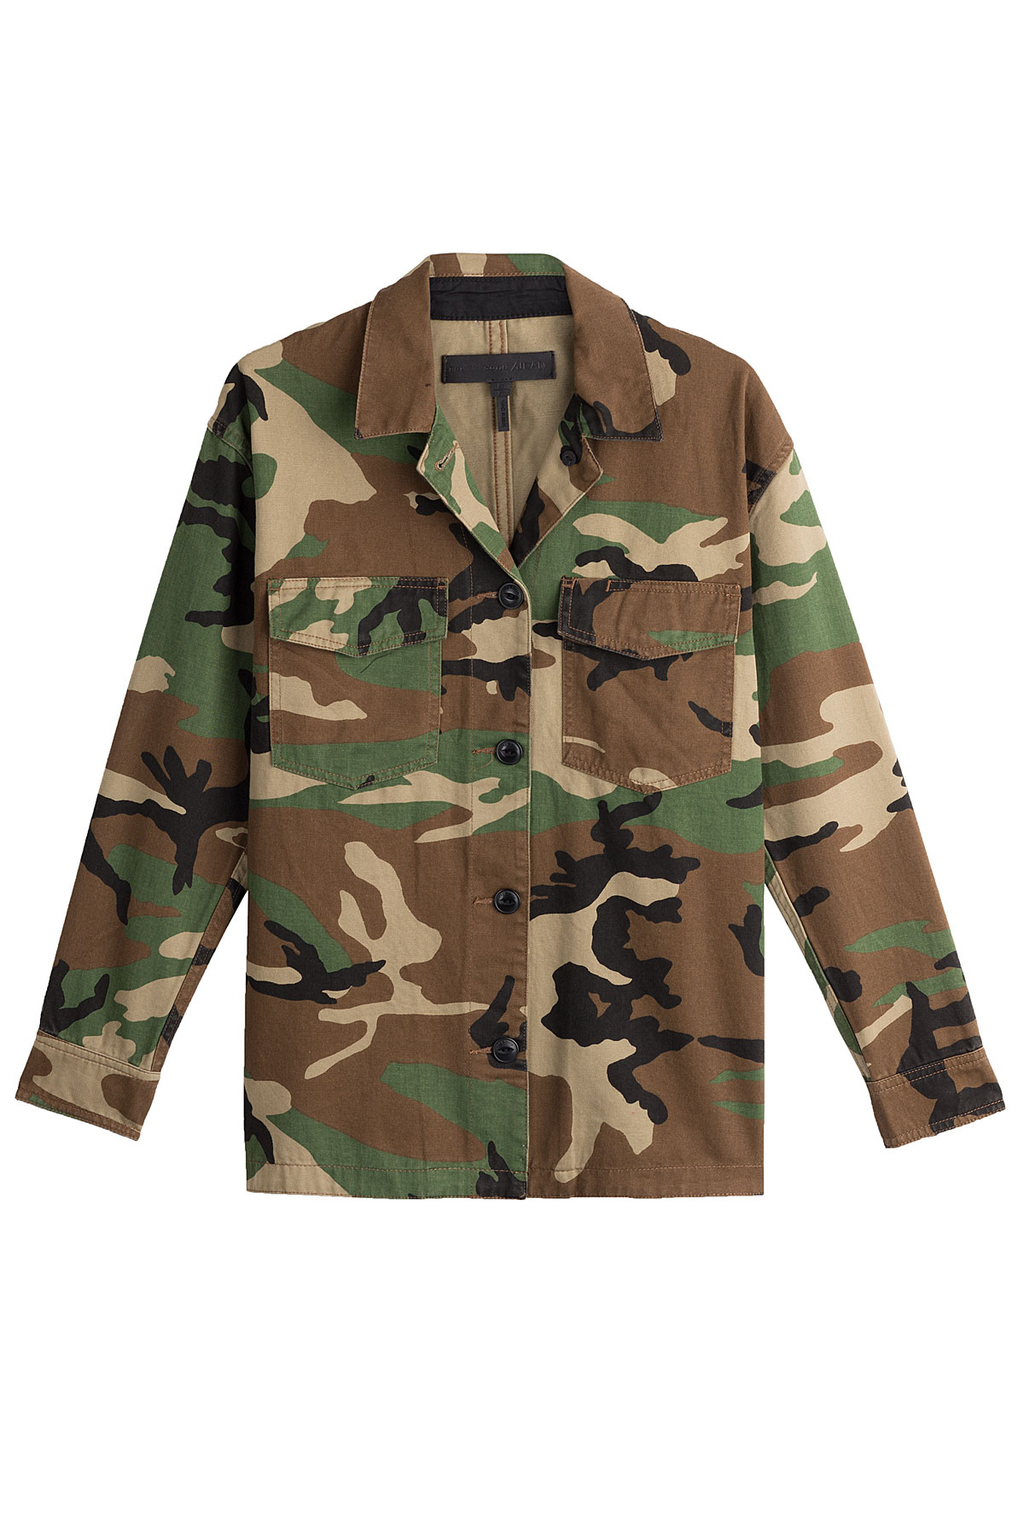 Cotton Camouflage Jacket - secondary colour: tan; predominant colour: khaki; occasions: casual; length: standard; fit: straight cut (boxy); fibres: cotton - mix; collar: shirt collar/peter pan/zip with opening; sleeve length: long sleeve; sleeve style: standard; texture group: cotton feel fabrics; collar break: high; pattern type: fabric; style: single breasted military jacket; pattern: camouflage; multicoloured: multicoloured; season: a/w 2016; wardrobe: highlight; trends: military